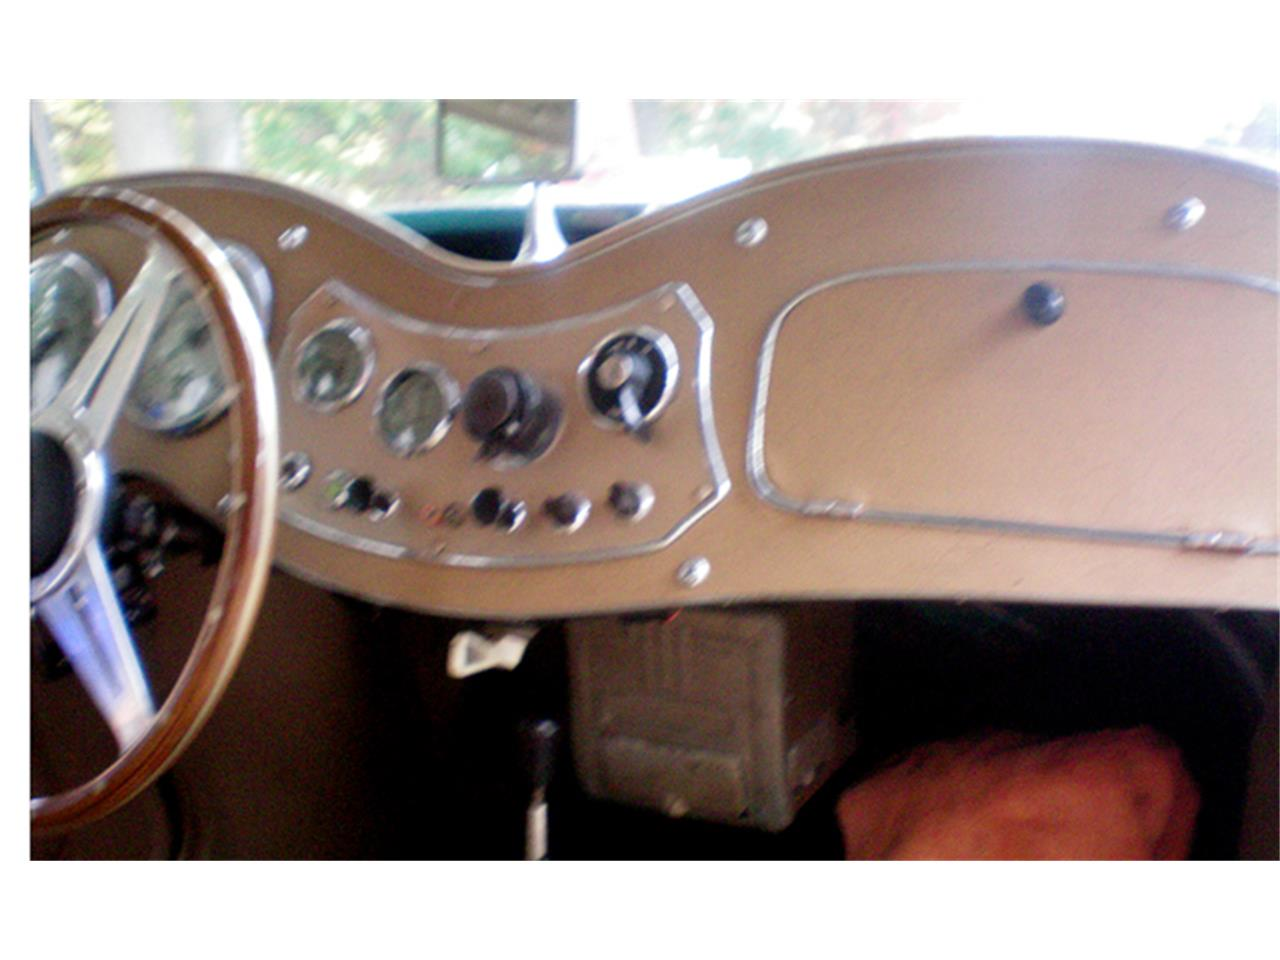 1951 MG TD (CC-1275826) for sale in Rye, New Hampshire